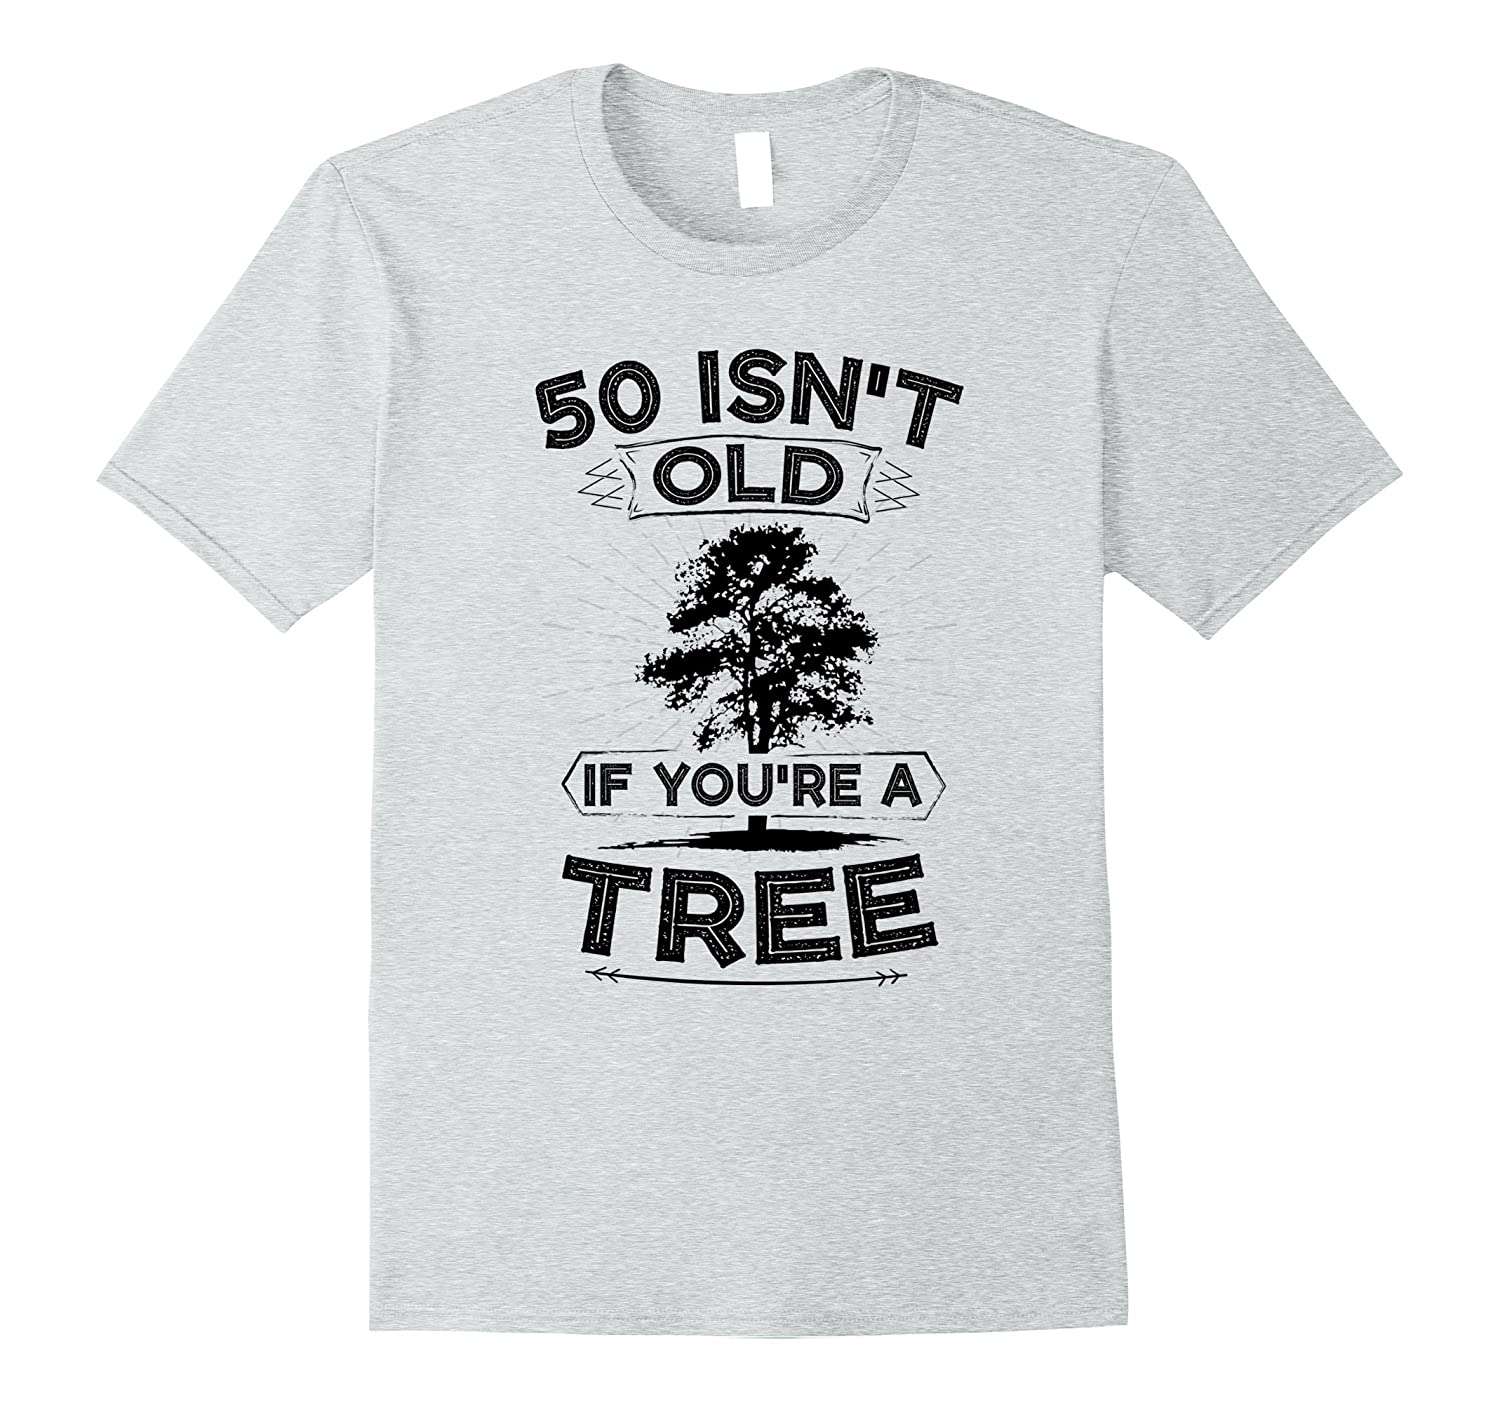 Funny 50th Birthday Joke Shirt 50 Isnt Old If Youre A Tree CL